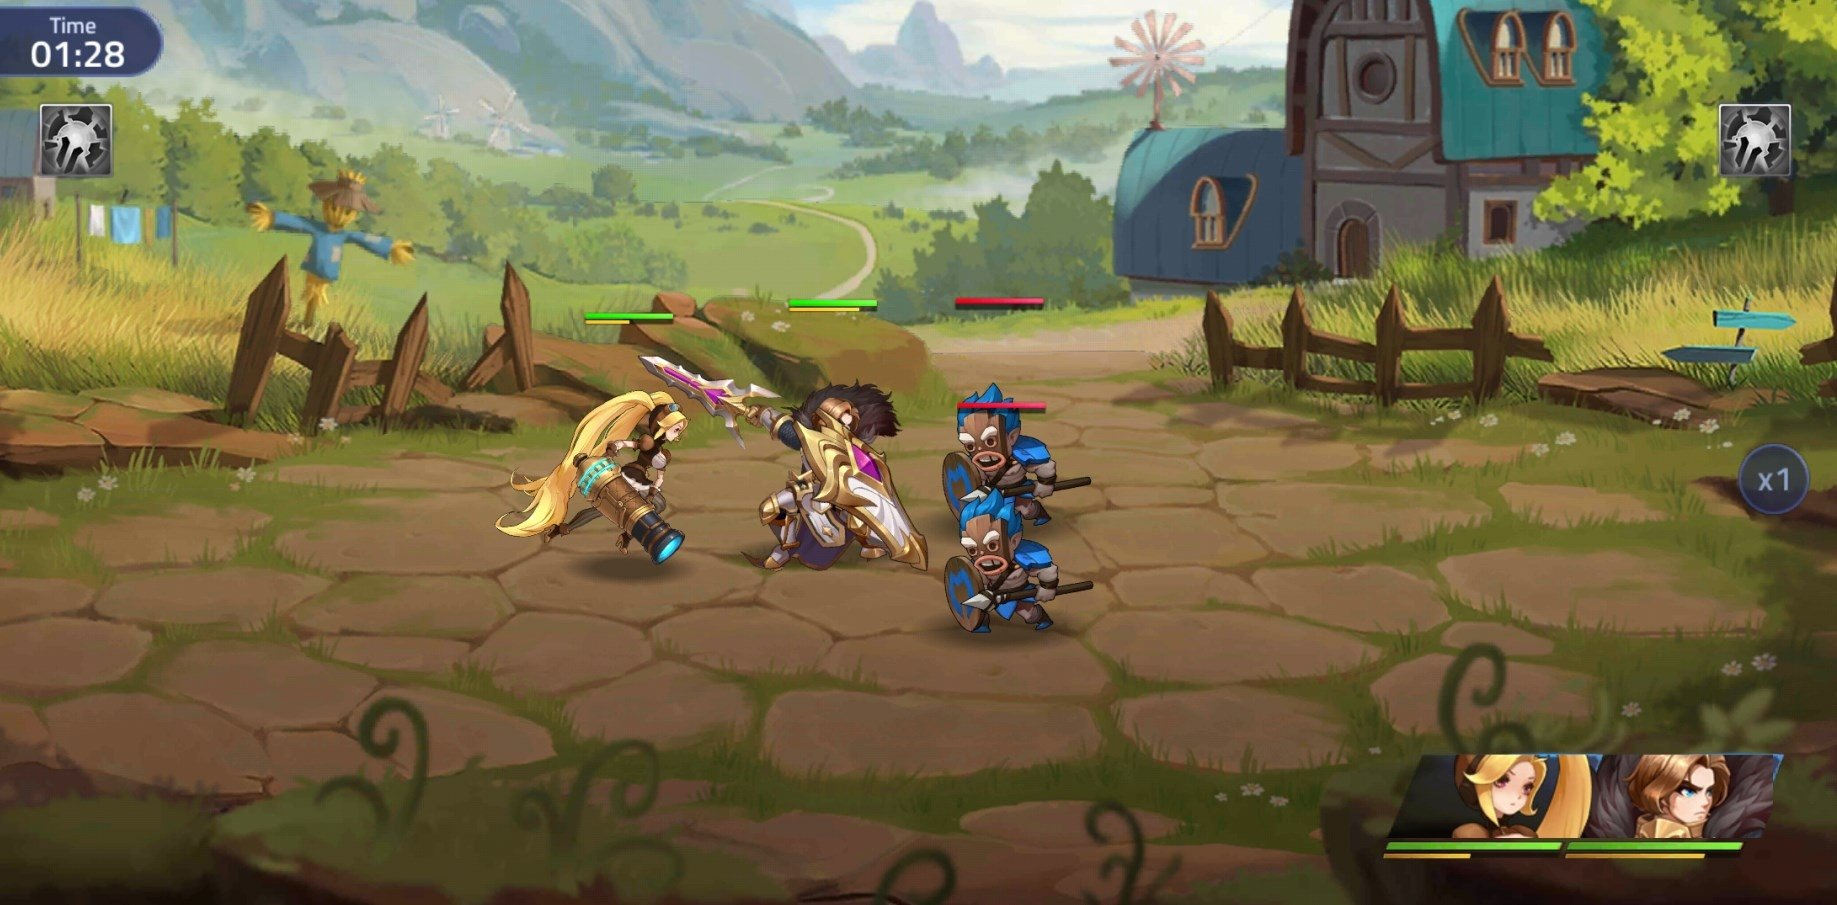 Mobile Legends: Adventure 1.1.29 - Download for Android APK Free